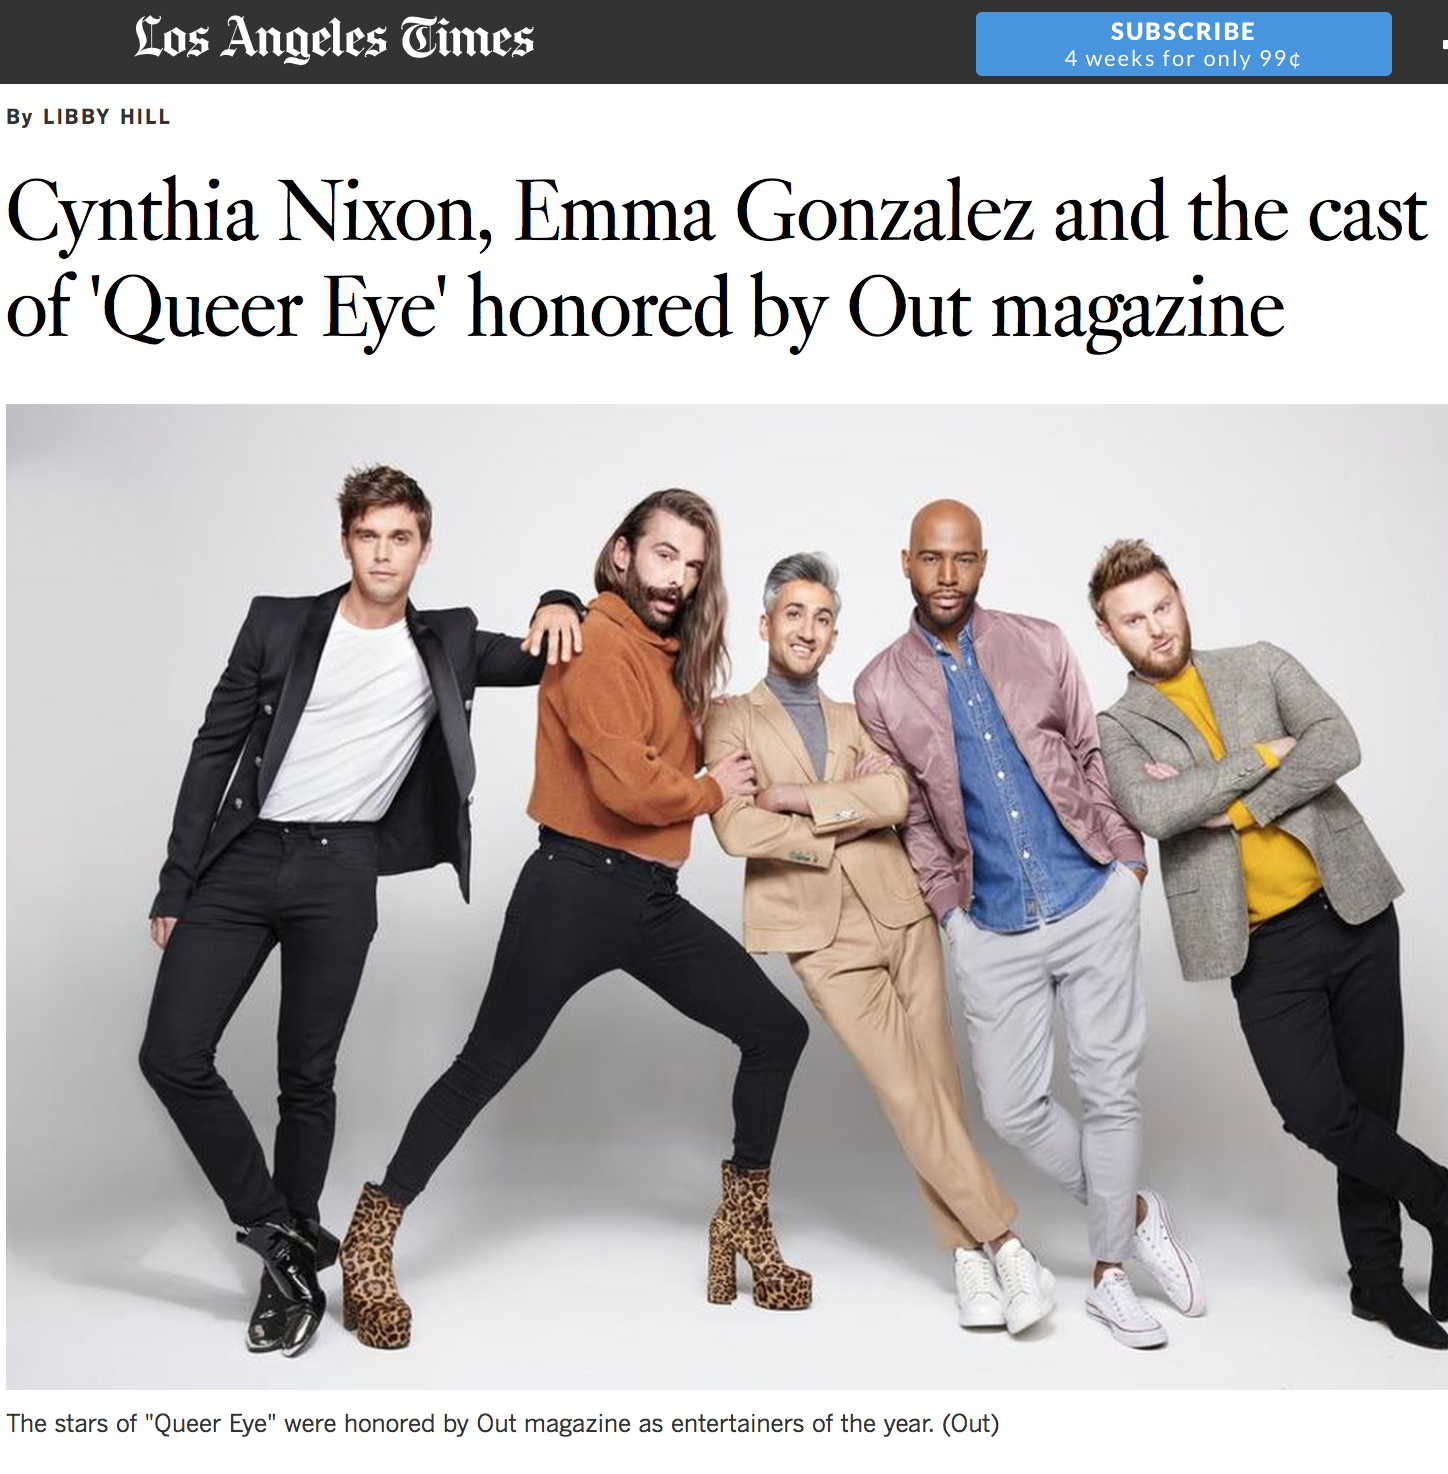 """LOS ANGELES TIMES    """"The theme of this year's list is Generations, which executive editor R. Kurt Osenlund reflected on in his editor's letter for the magazine. 'Young queer people embody the progress no one can stop,' Osenlund wrote. 'They are inflexibly done with systemic ugliness and toxic traditions.'"""""""